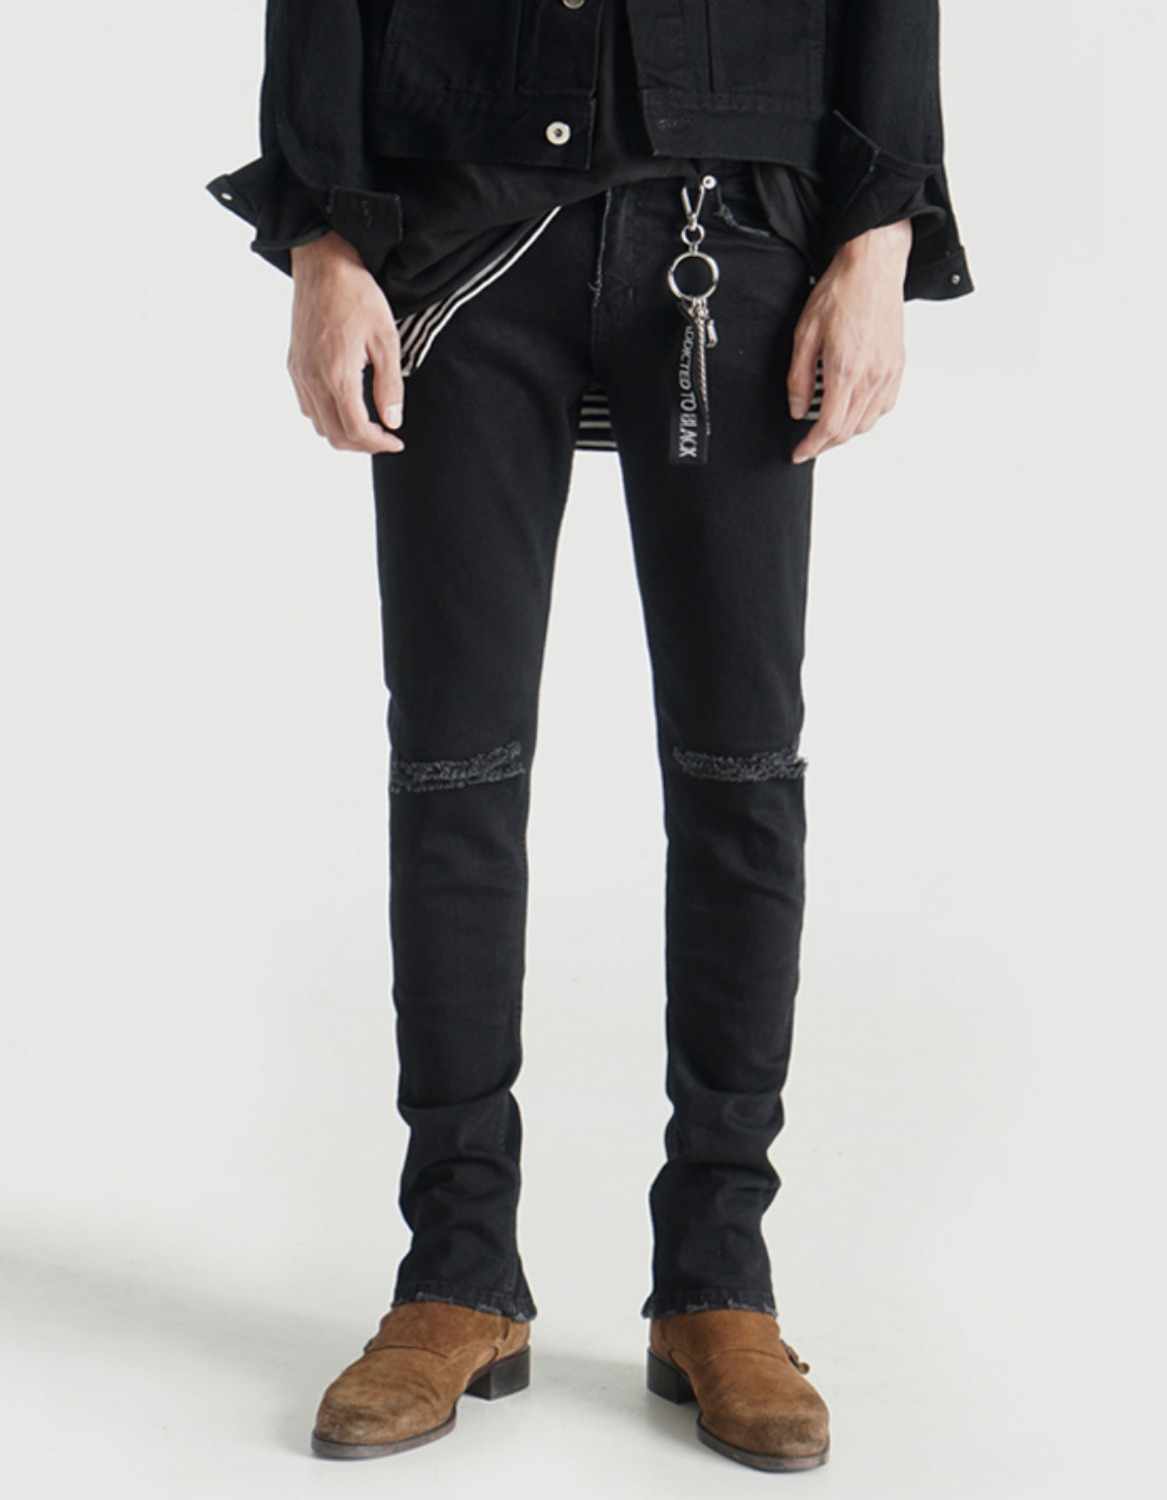 #LMD0007 LBLACK BACK-zipper Destroyed Denim